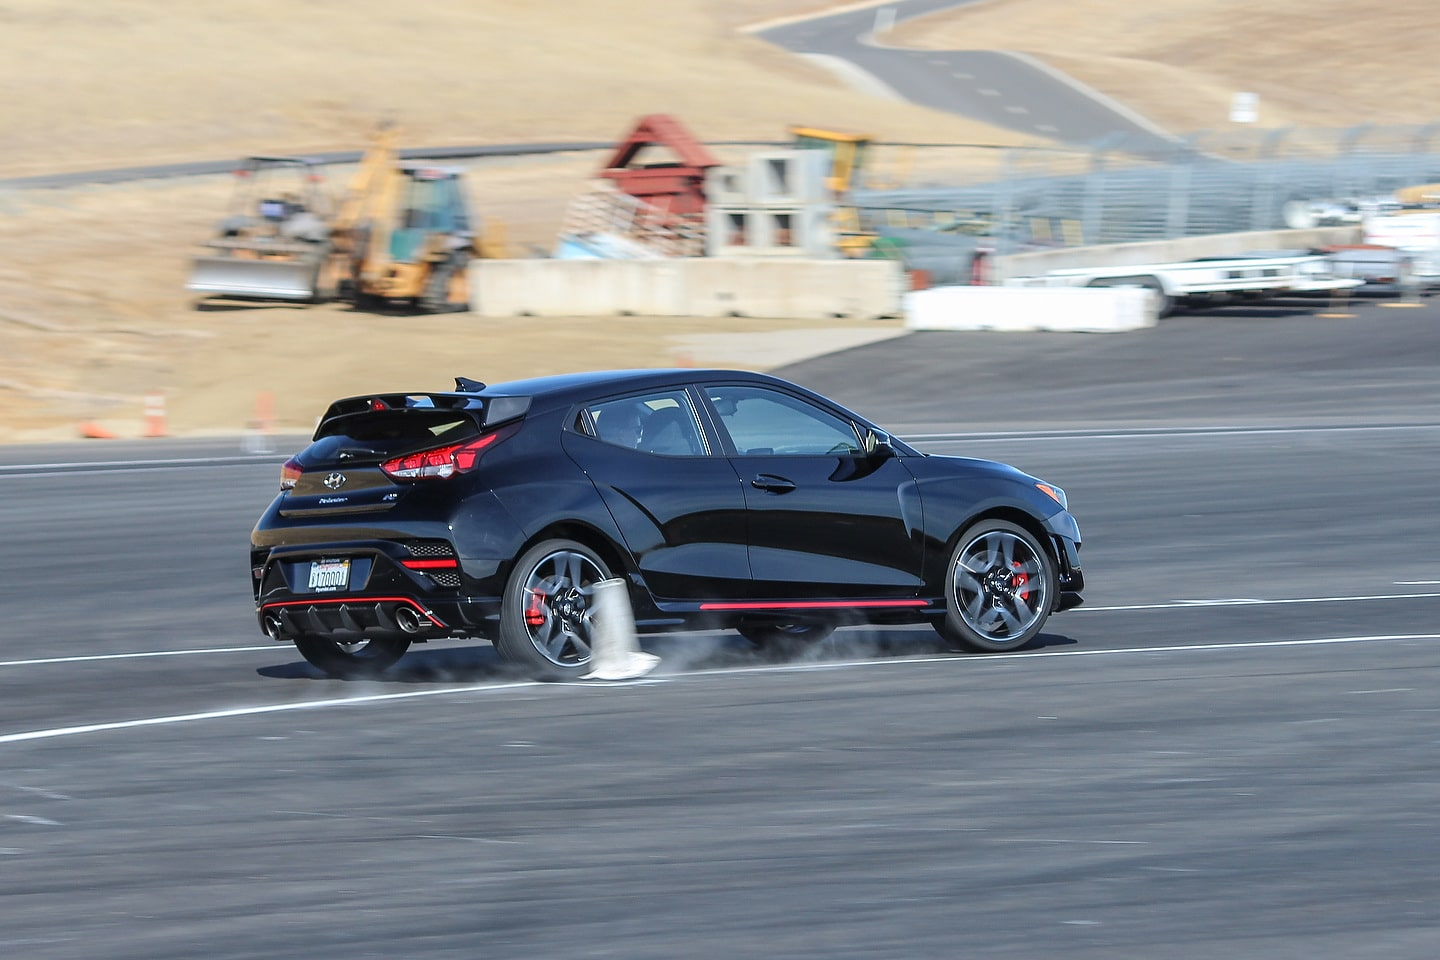 2019 Hyundai Veloster N First Drive - Motor Illustrated